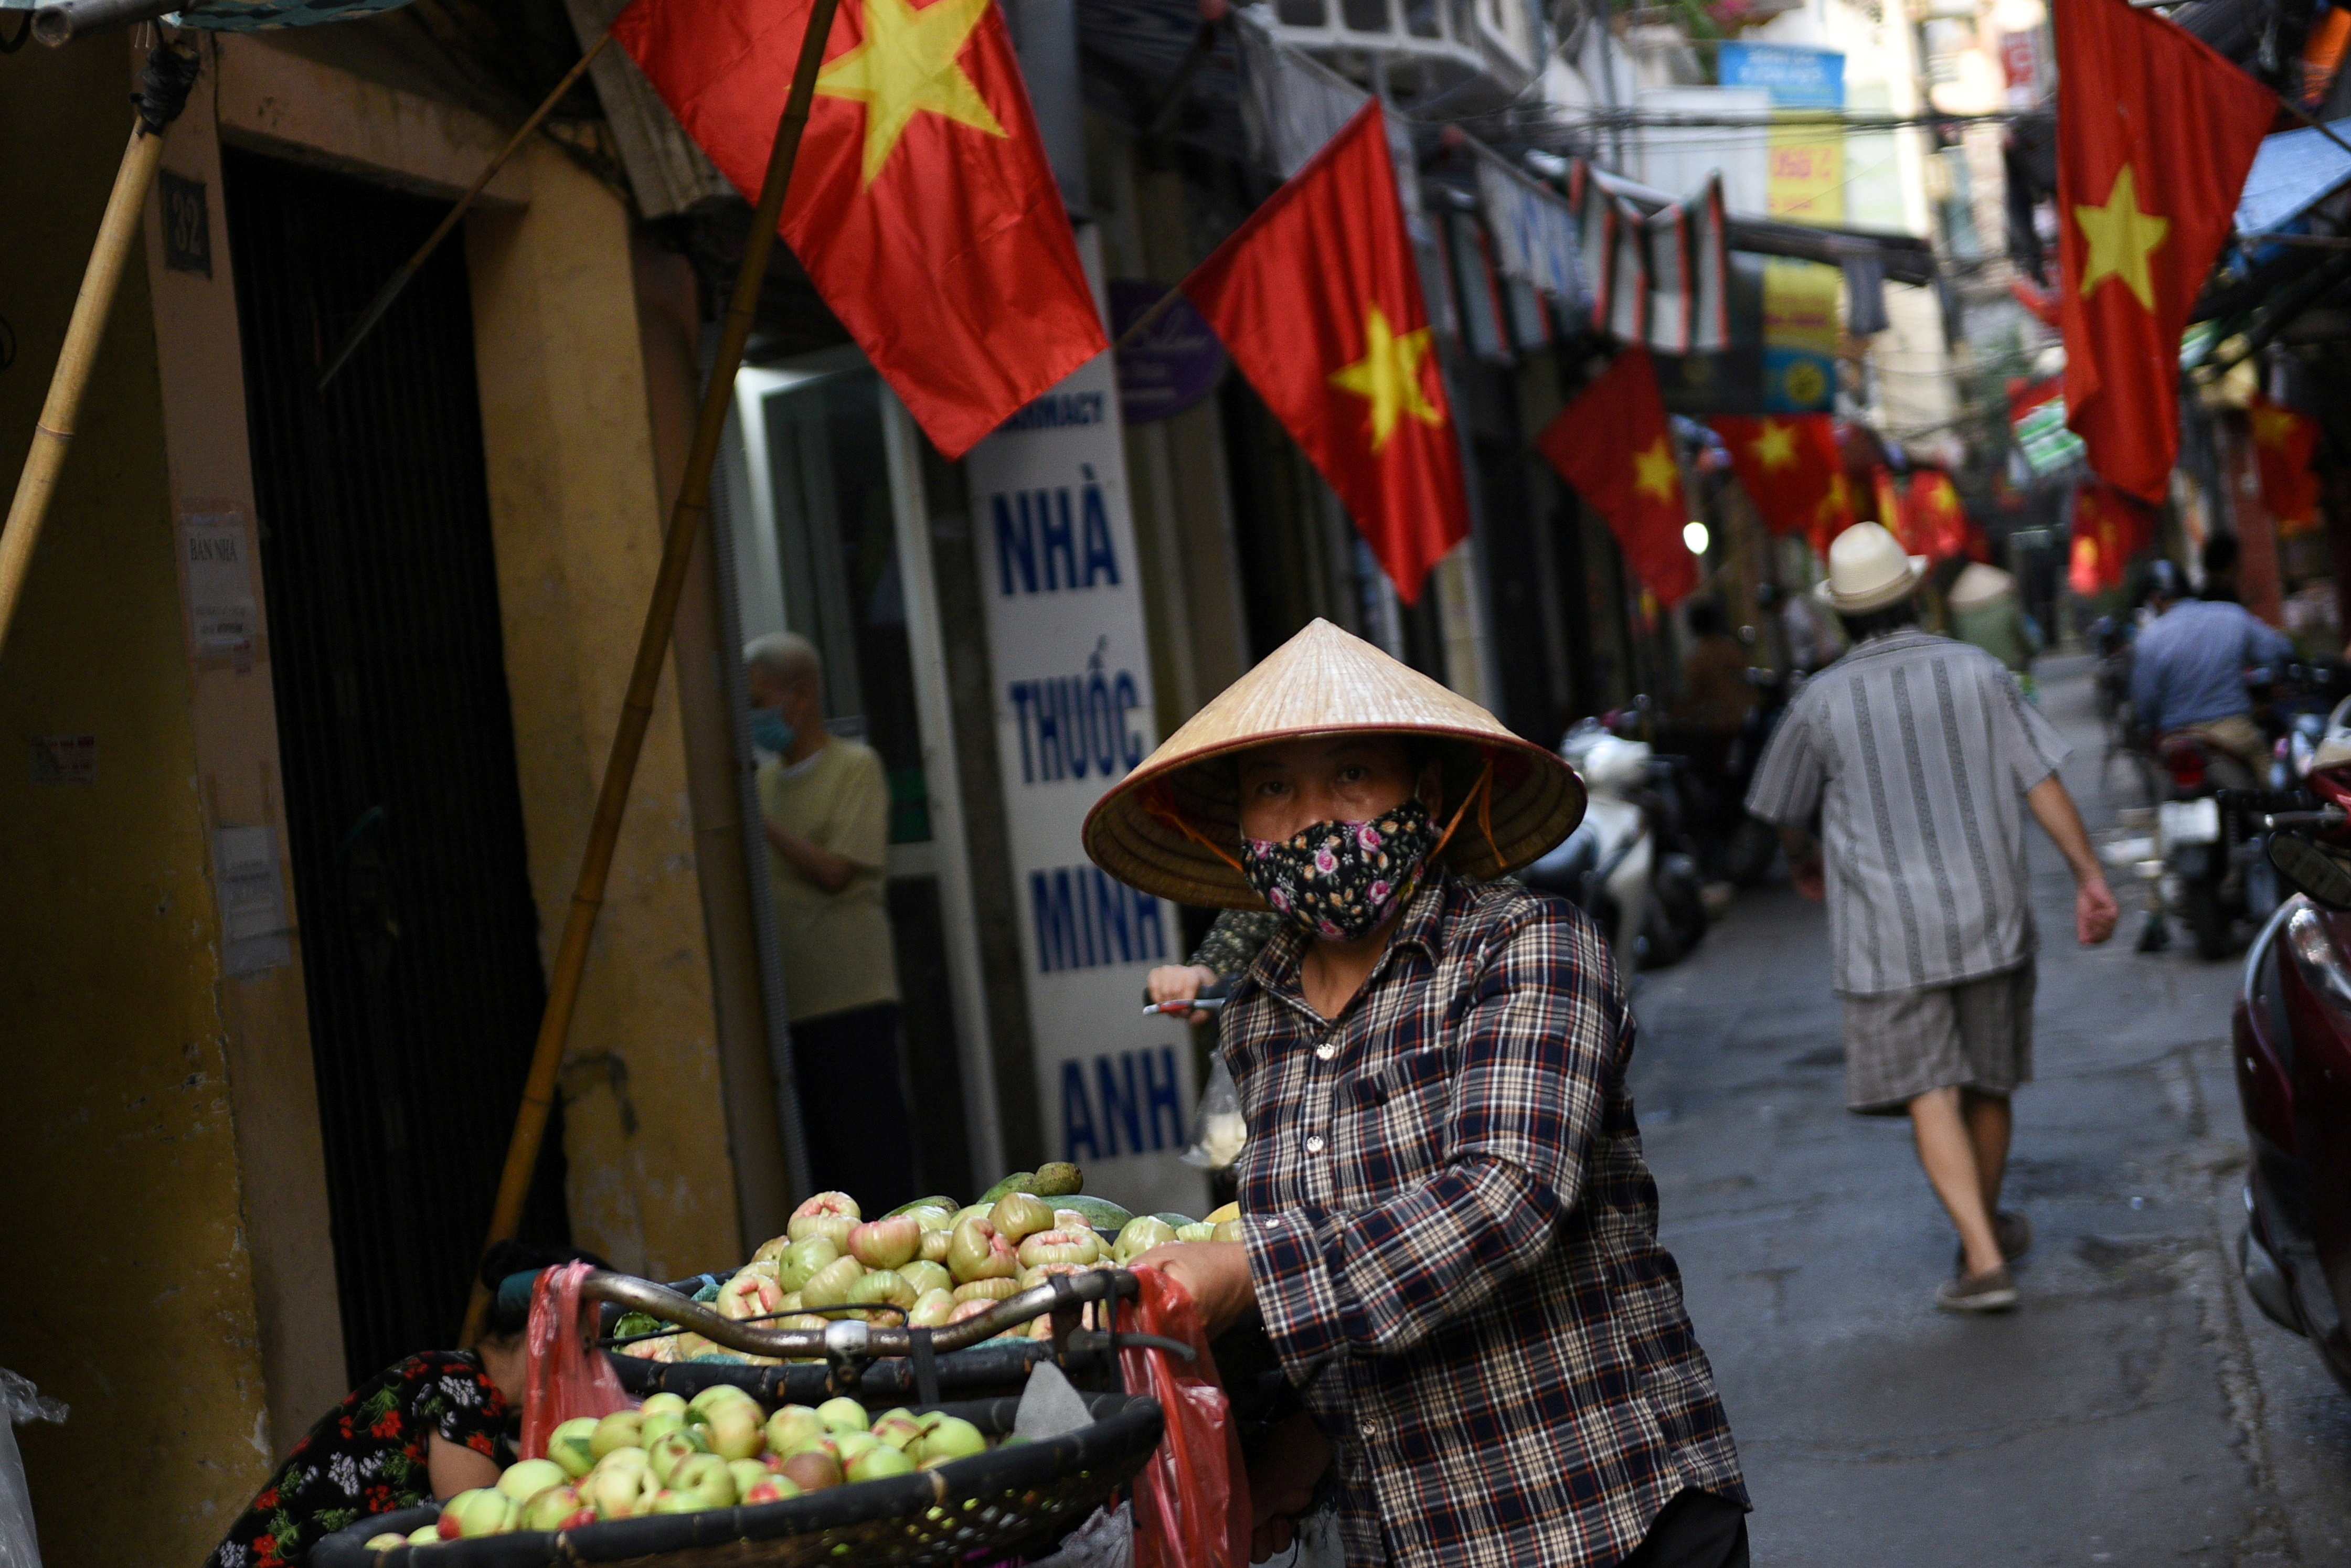 A vendor walks in an alley decorated with national flags ahead of the upcoming elections in Hanoi, Vietnam, May 19, 2021. Picture taken May 19, 2021.  REUTERS/Thanh Hue/File Photo